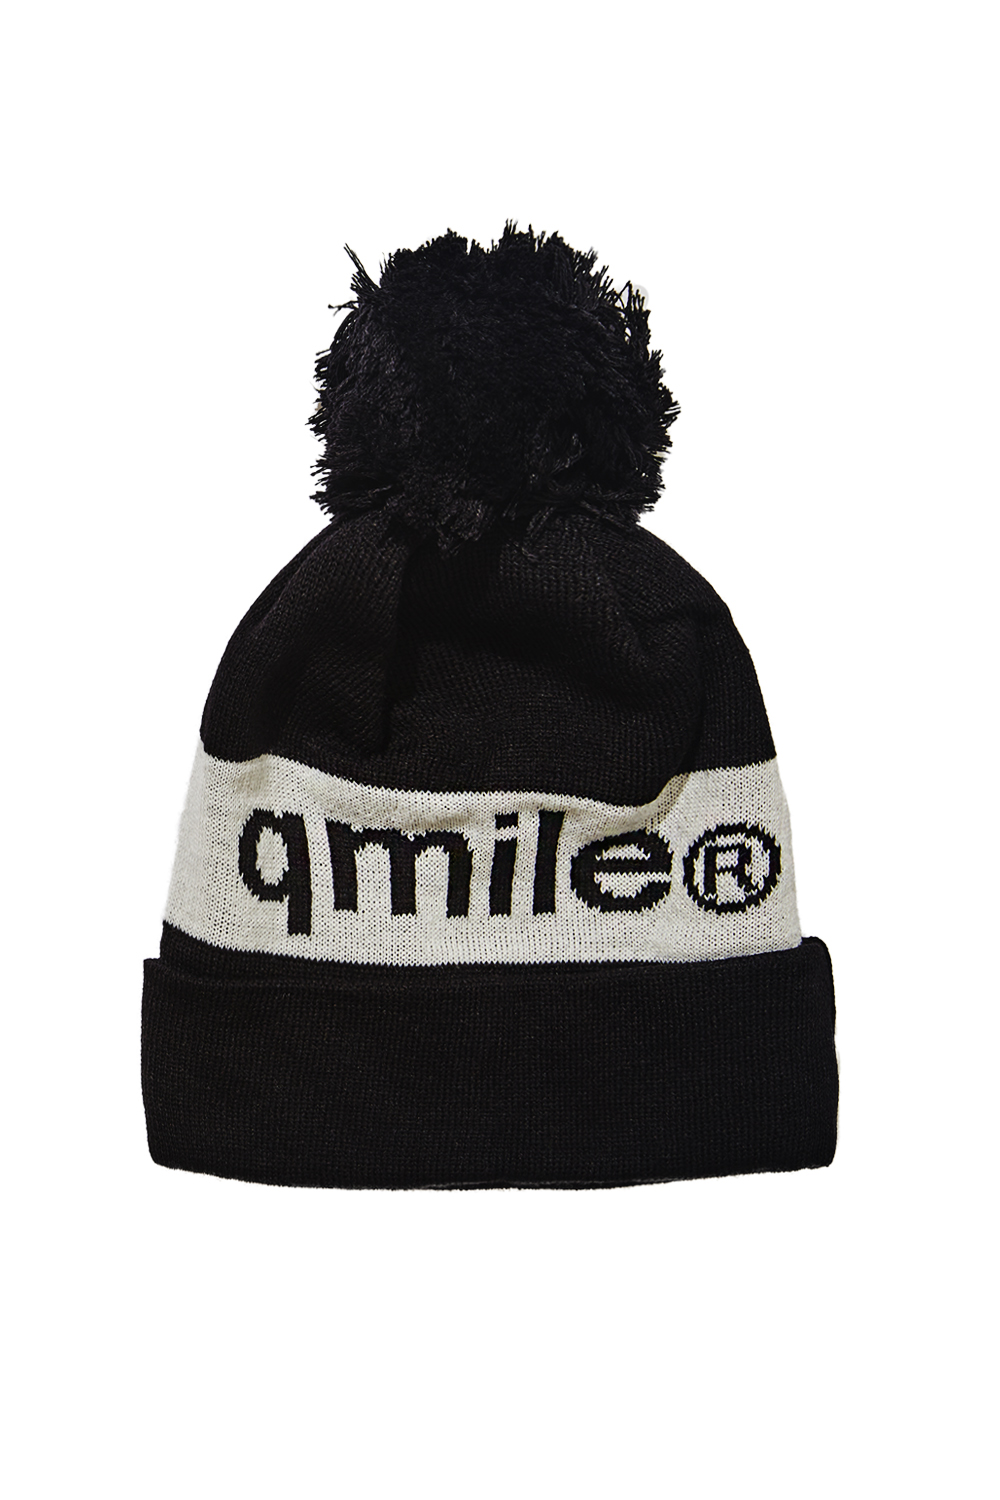 TYMAX LOGO BALL BEANIE | BLACK